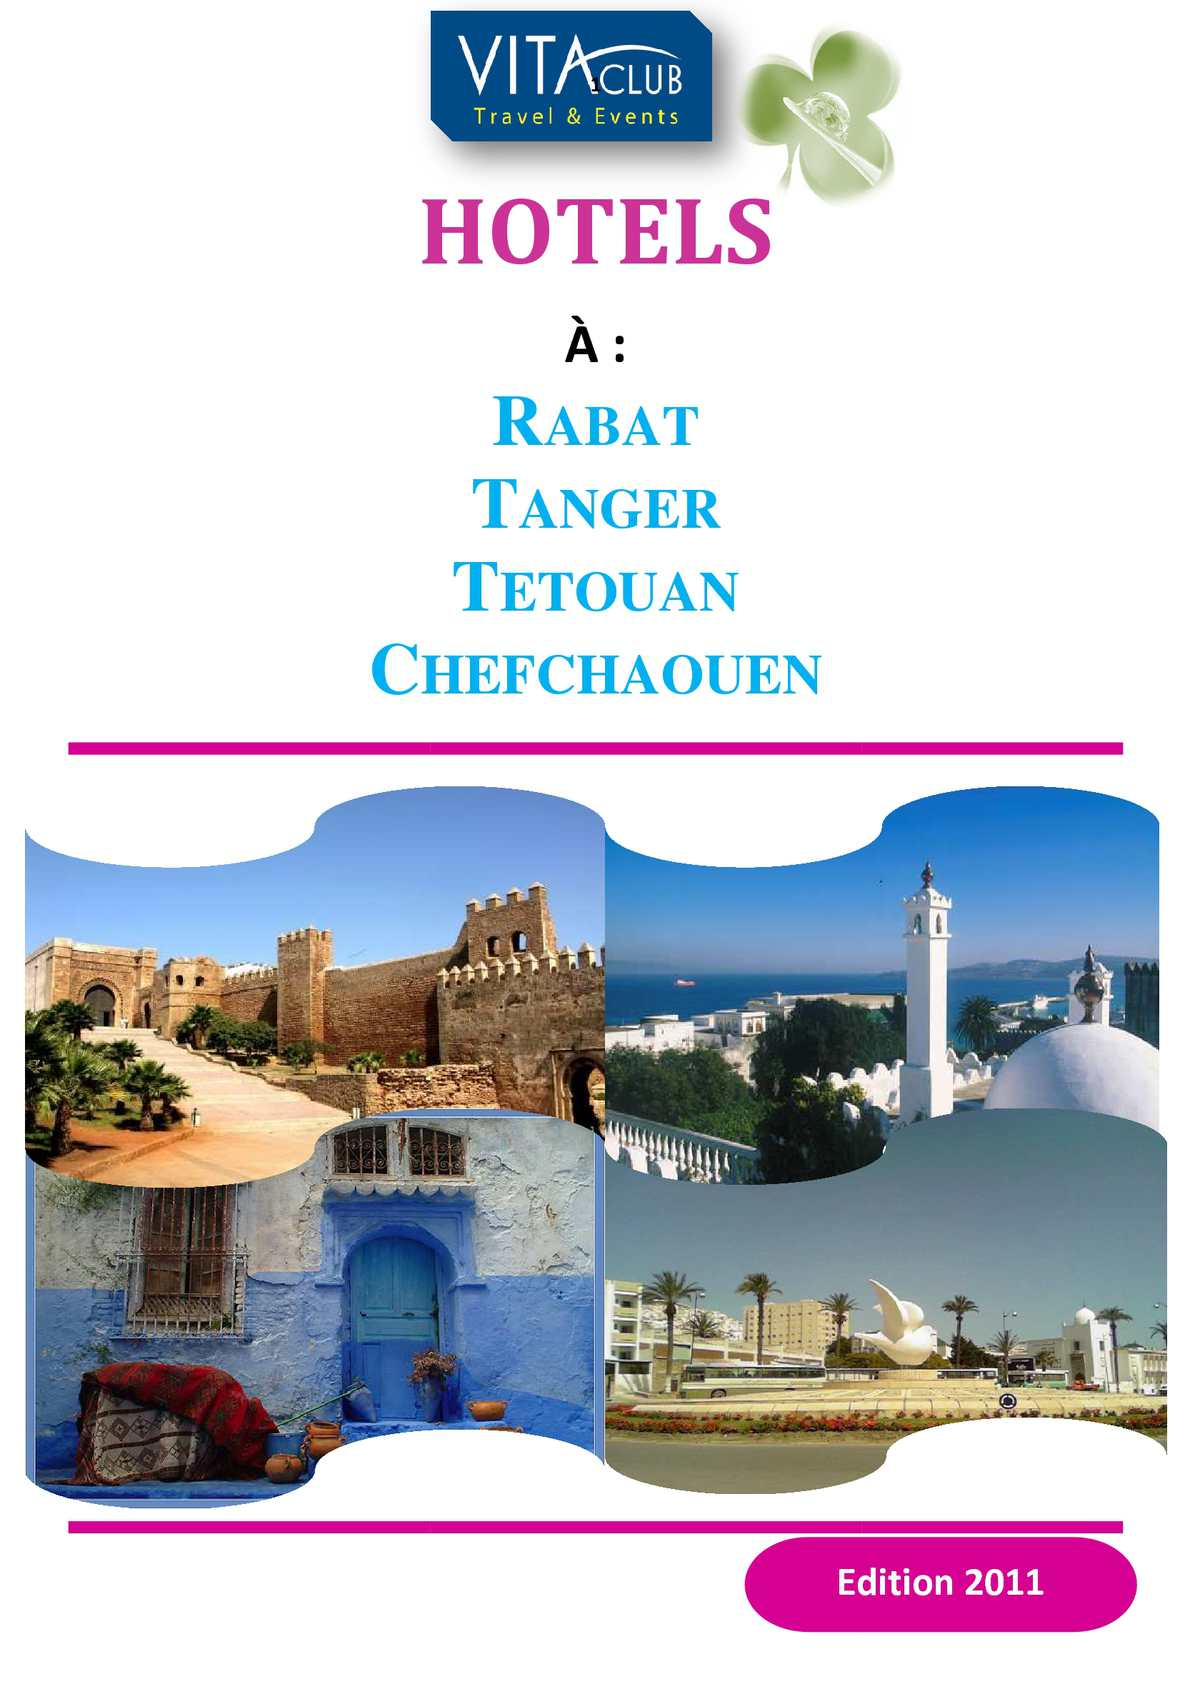 Hôtels à Rabat,Tanger,Tetouan,Chefchaouen ( Vita Club Travel & Events)